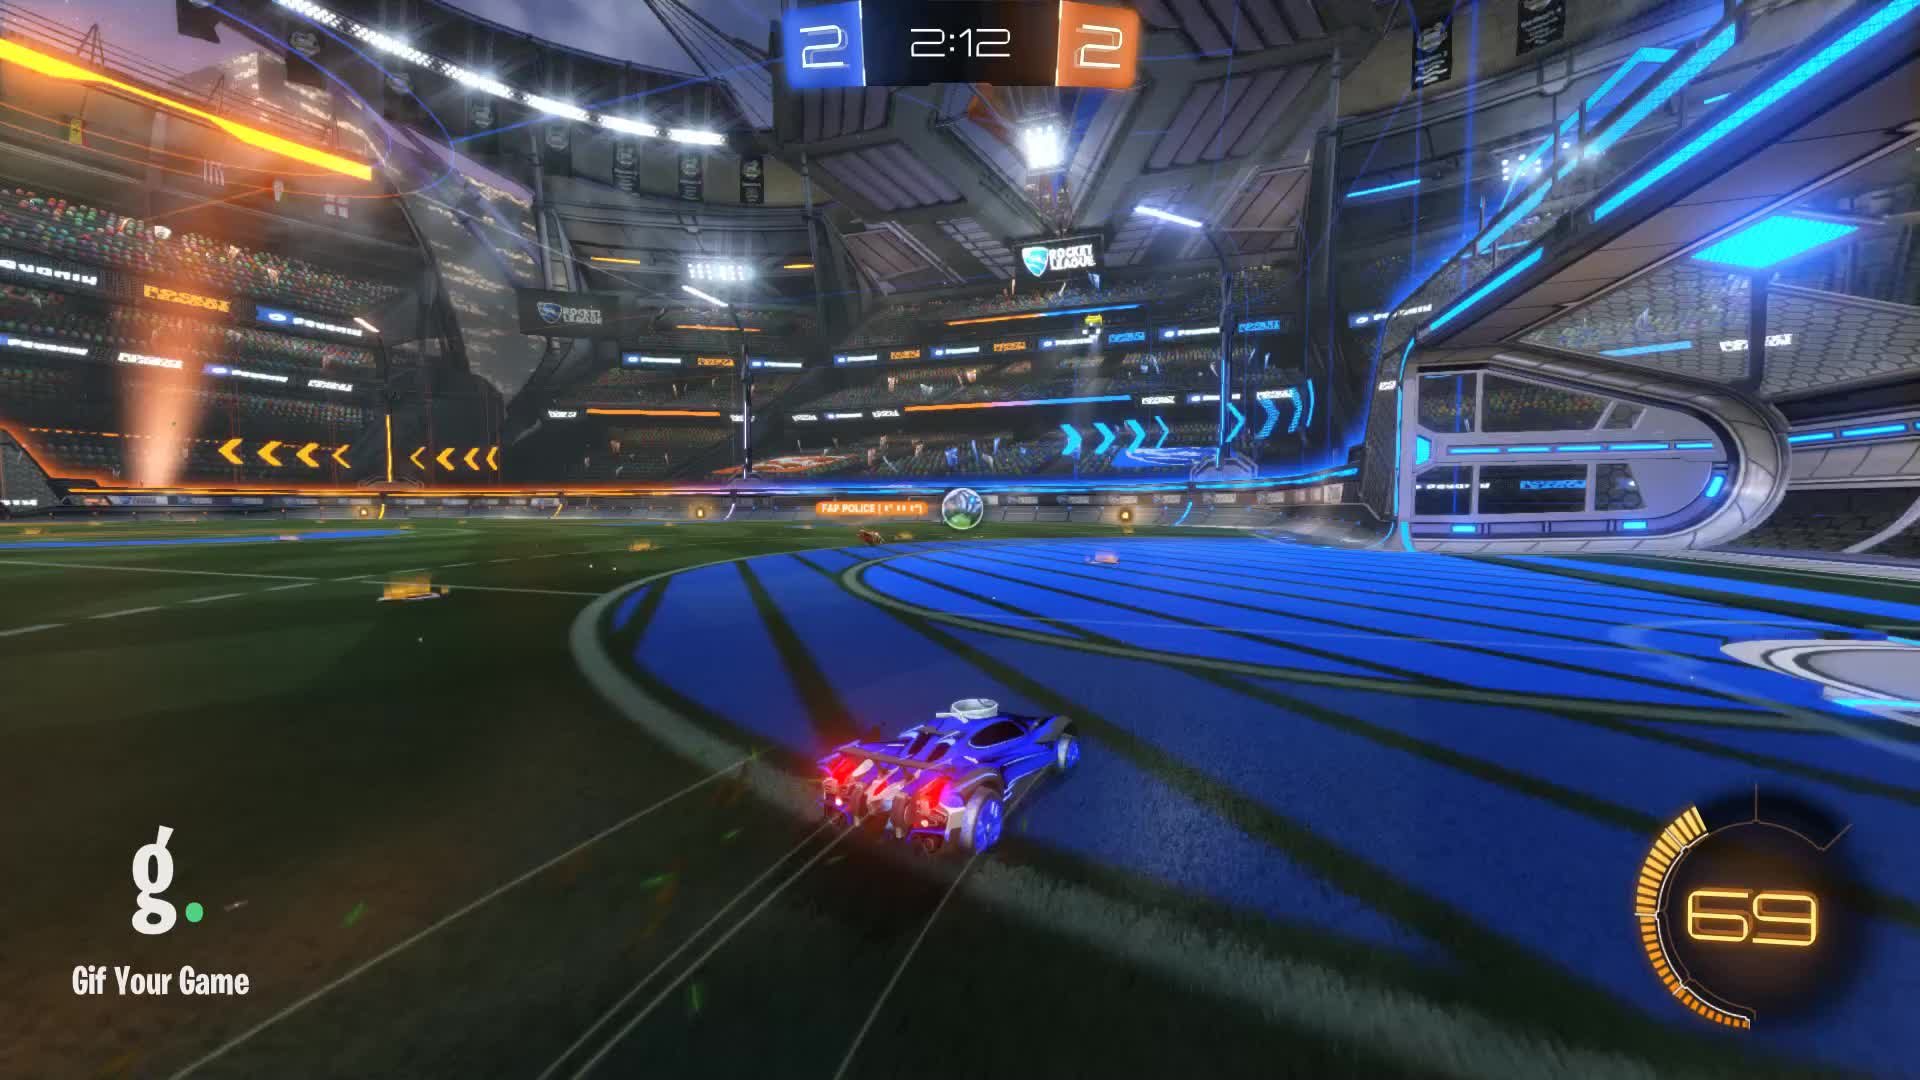 Gif Your Game, GifYourGame, Goal, Rocket League, RocketLeague, Spidey Webs, Goal 5: Spidey Webs GIFs